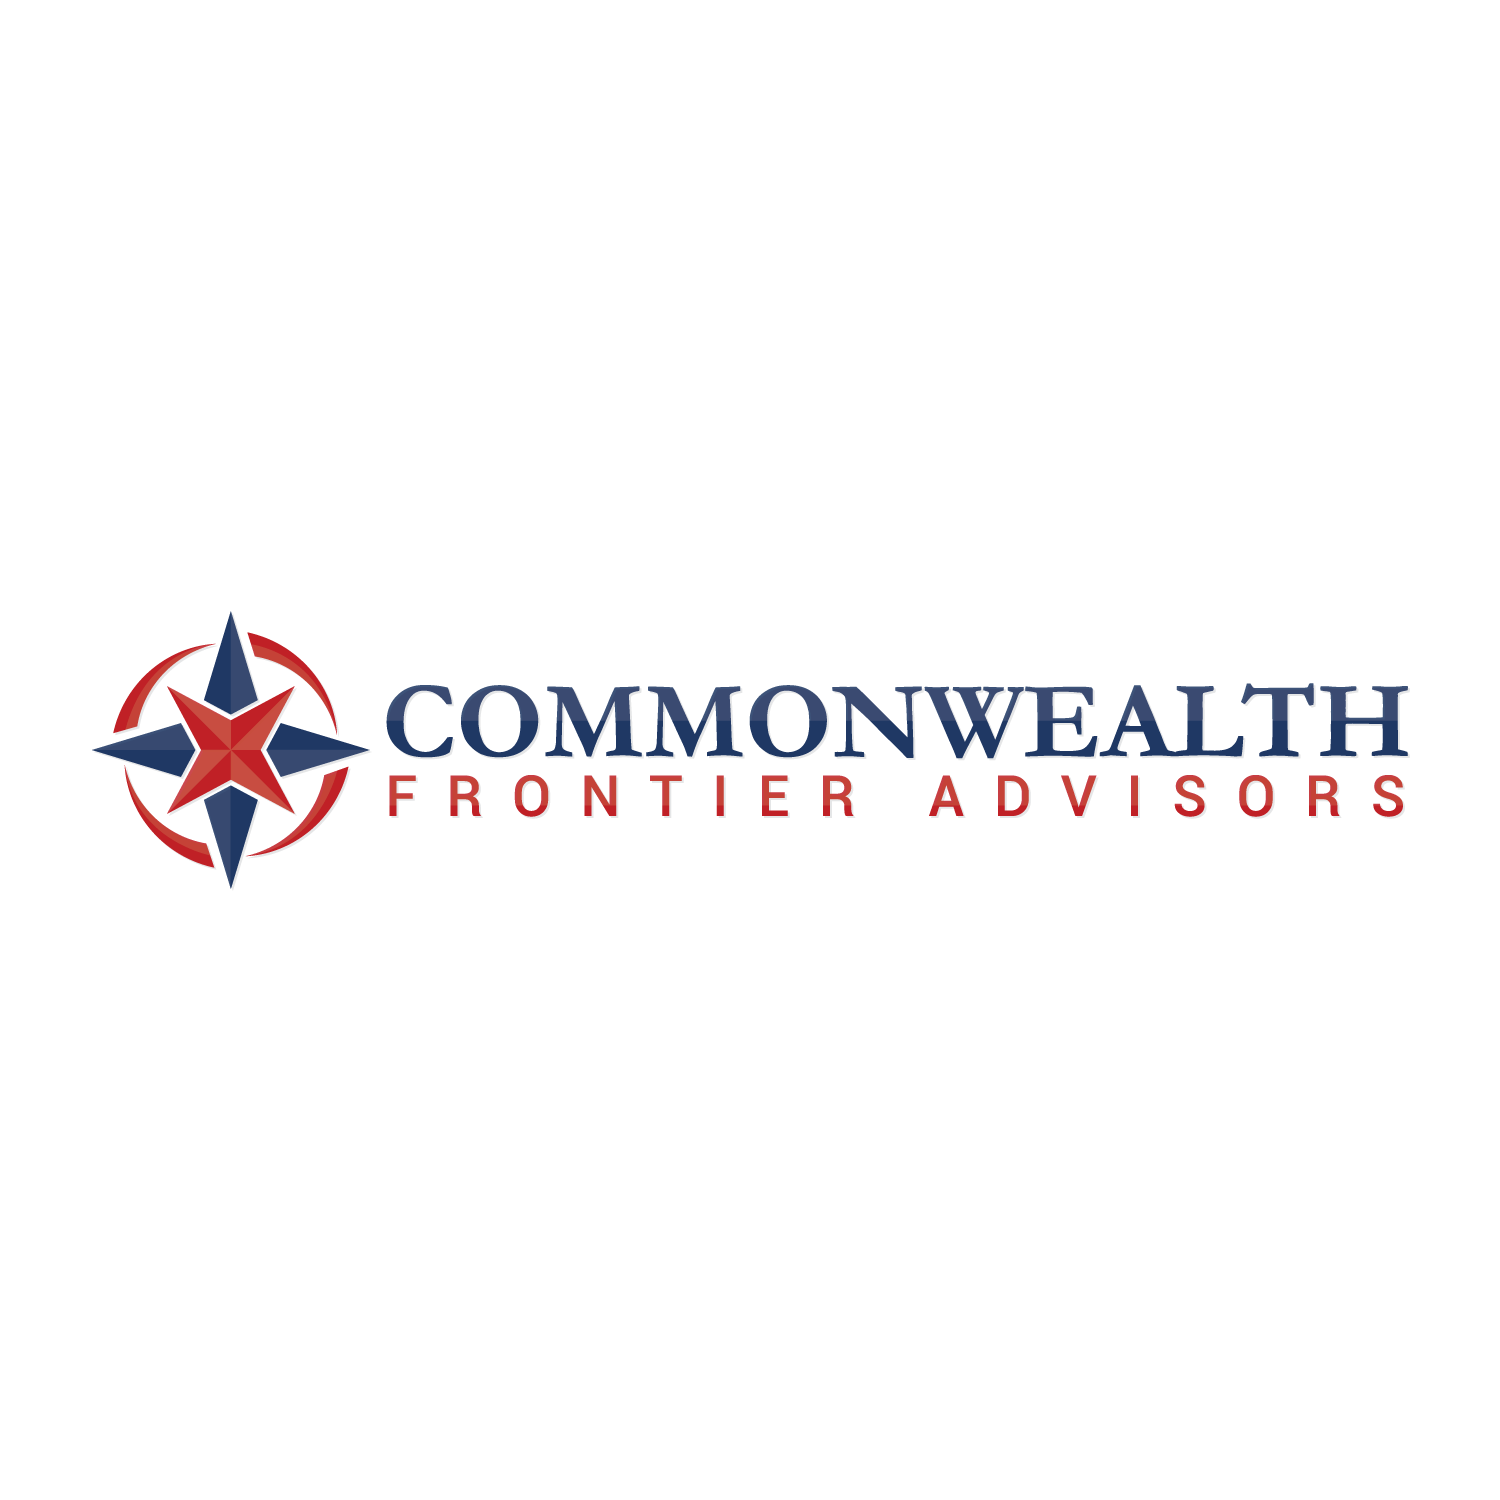 COMMONWEALTH-FRONTIER-ADVISORS-logo-A1.png